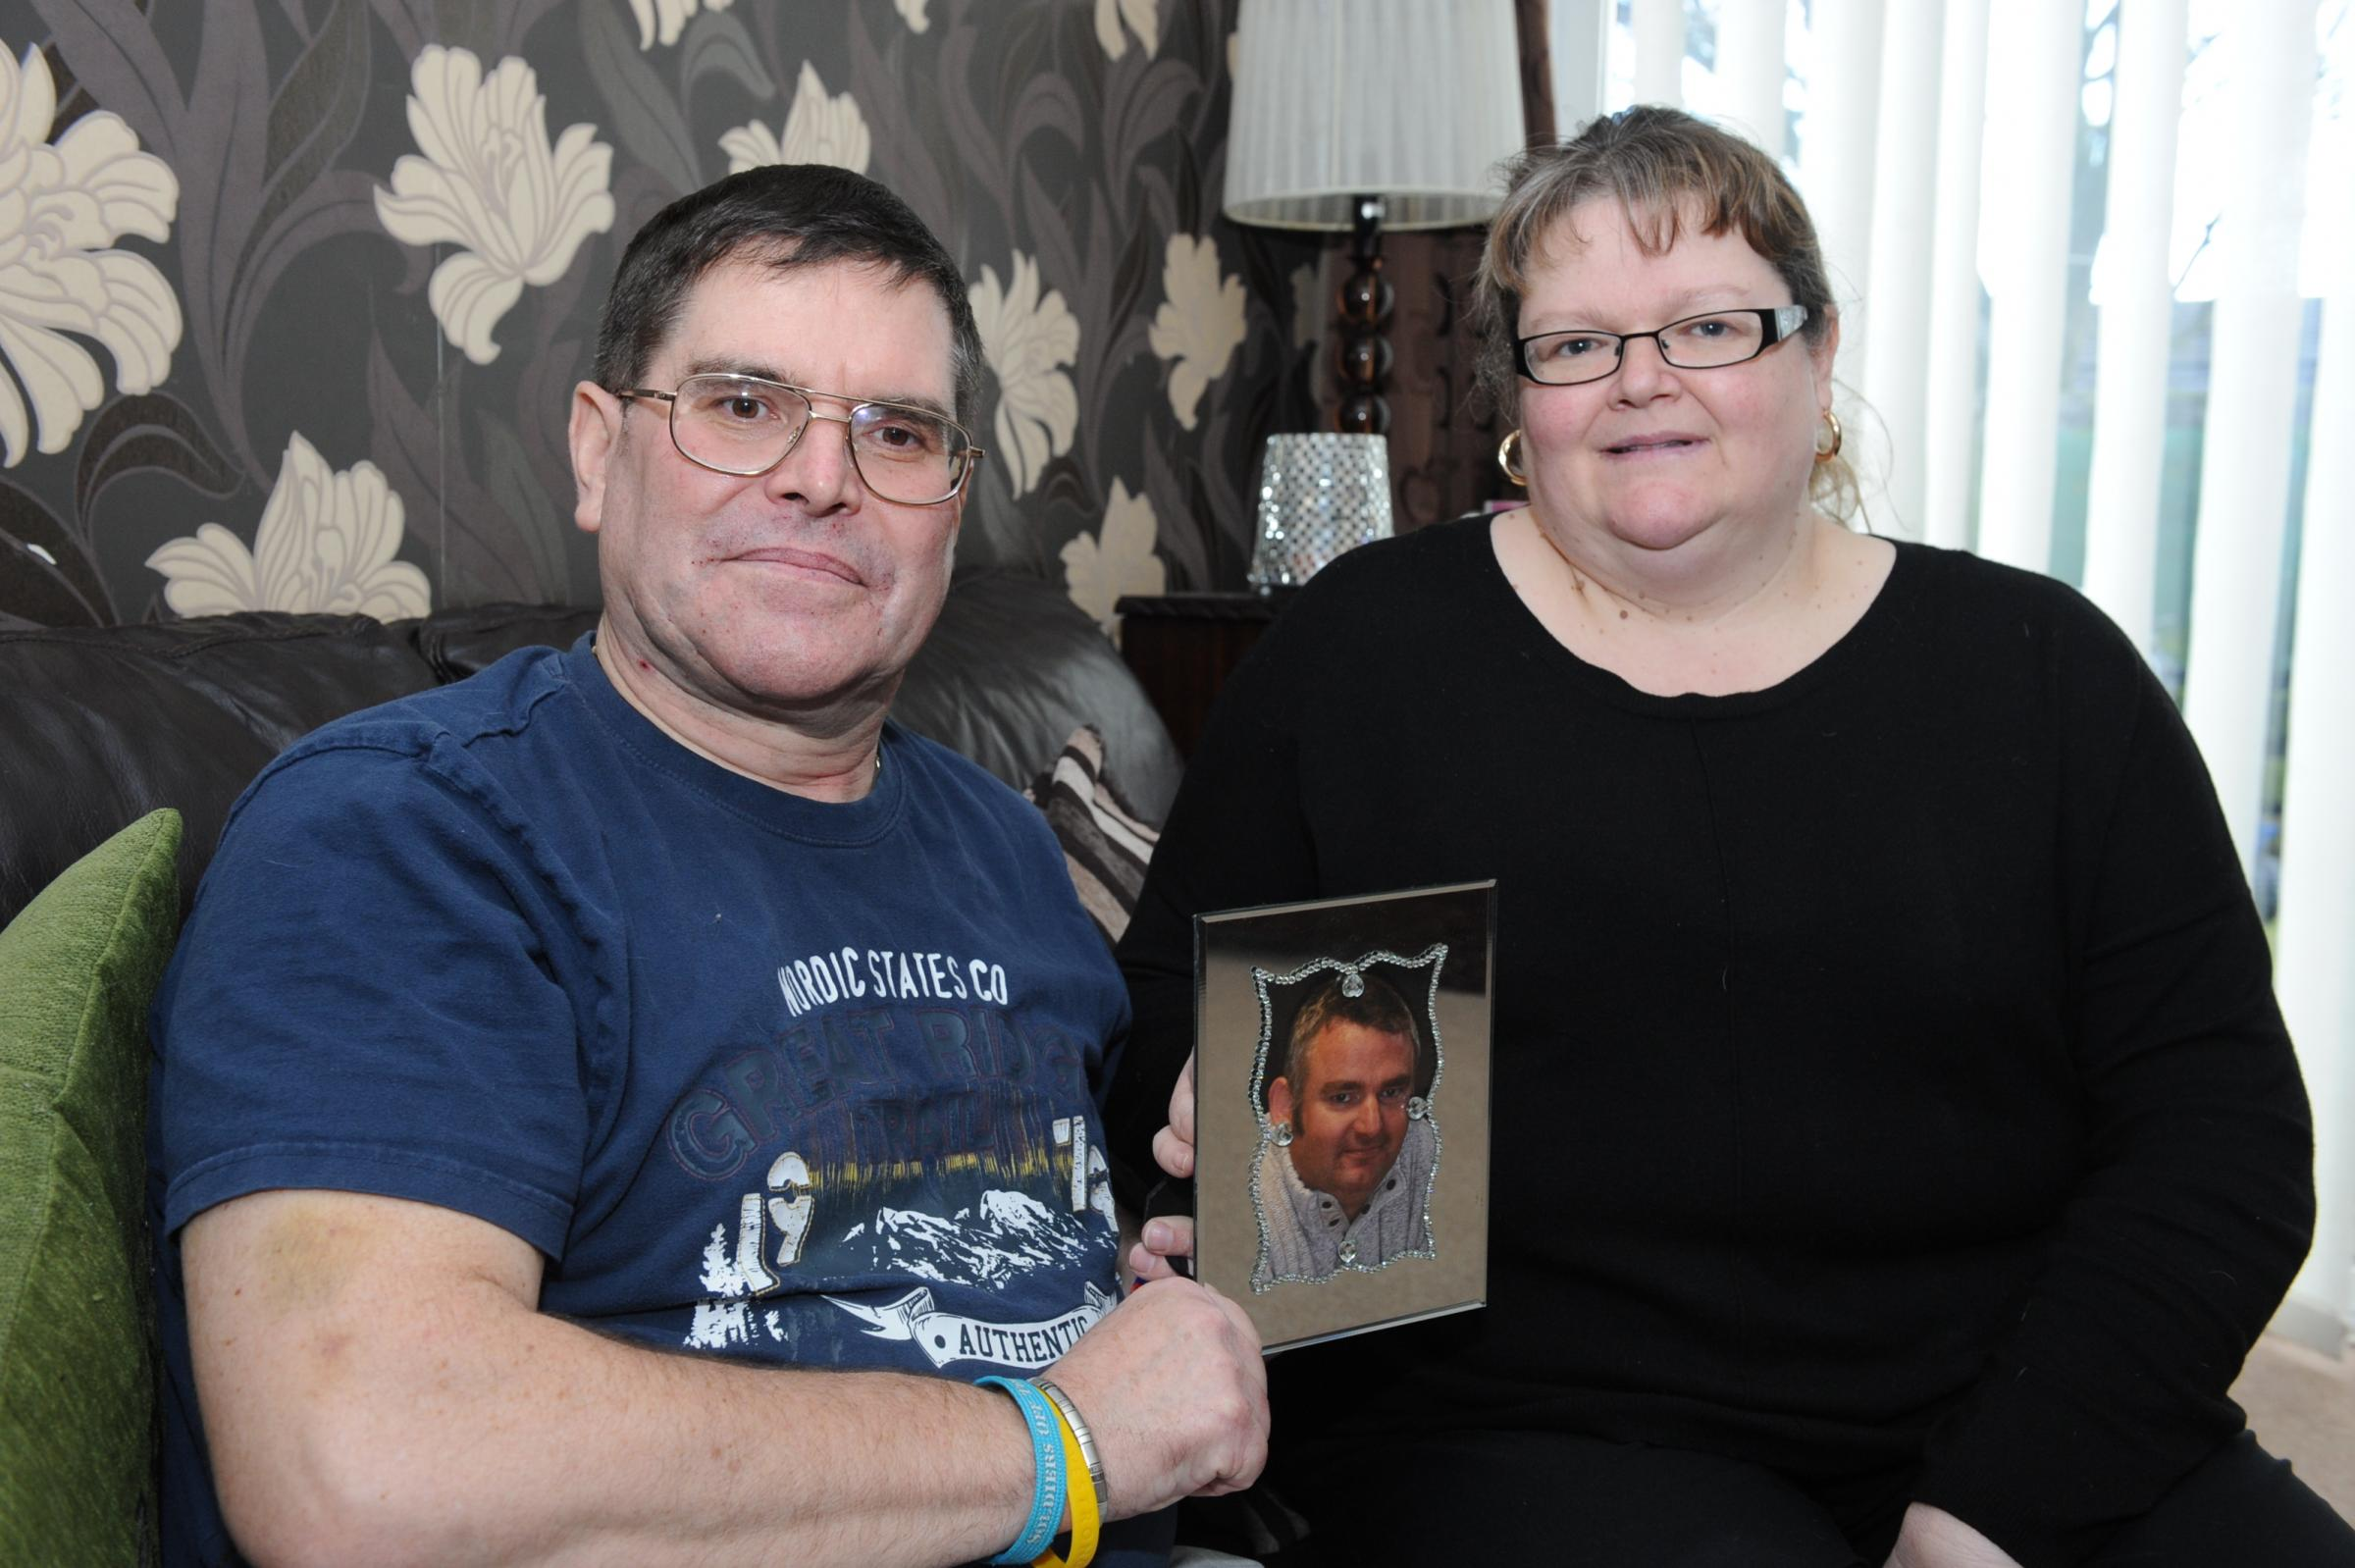 Fundraising plan – family friend Malcolm Wheeler with Carol Macvicar, whose brother Jamie died last year from leukaemia